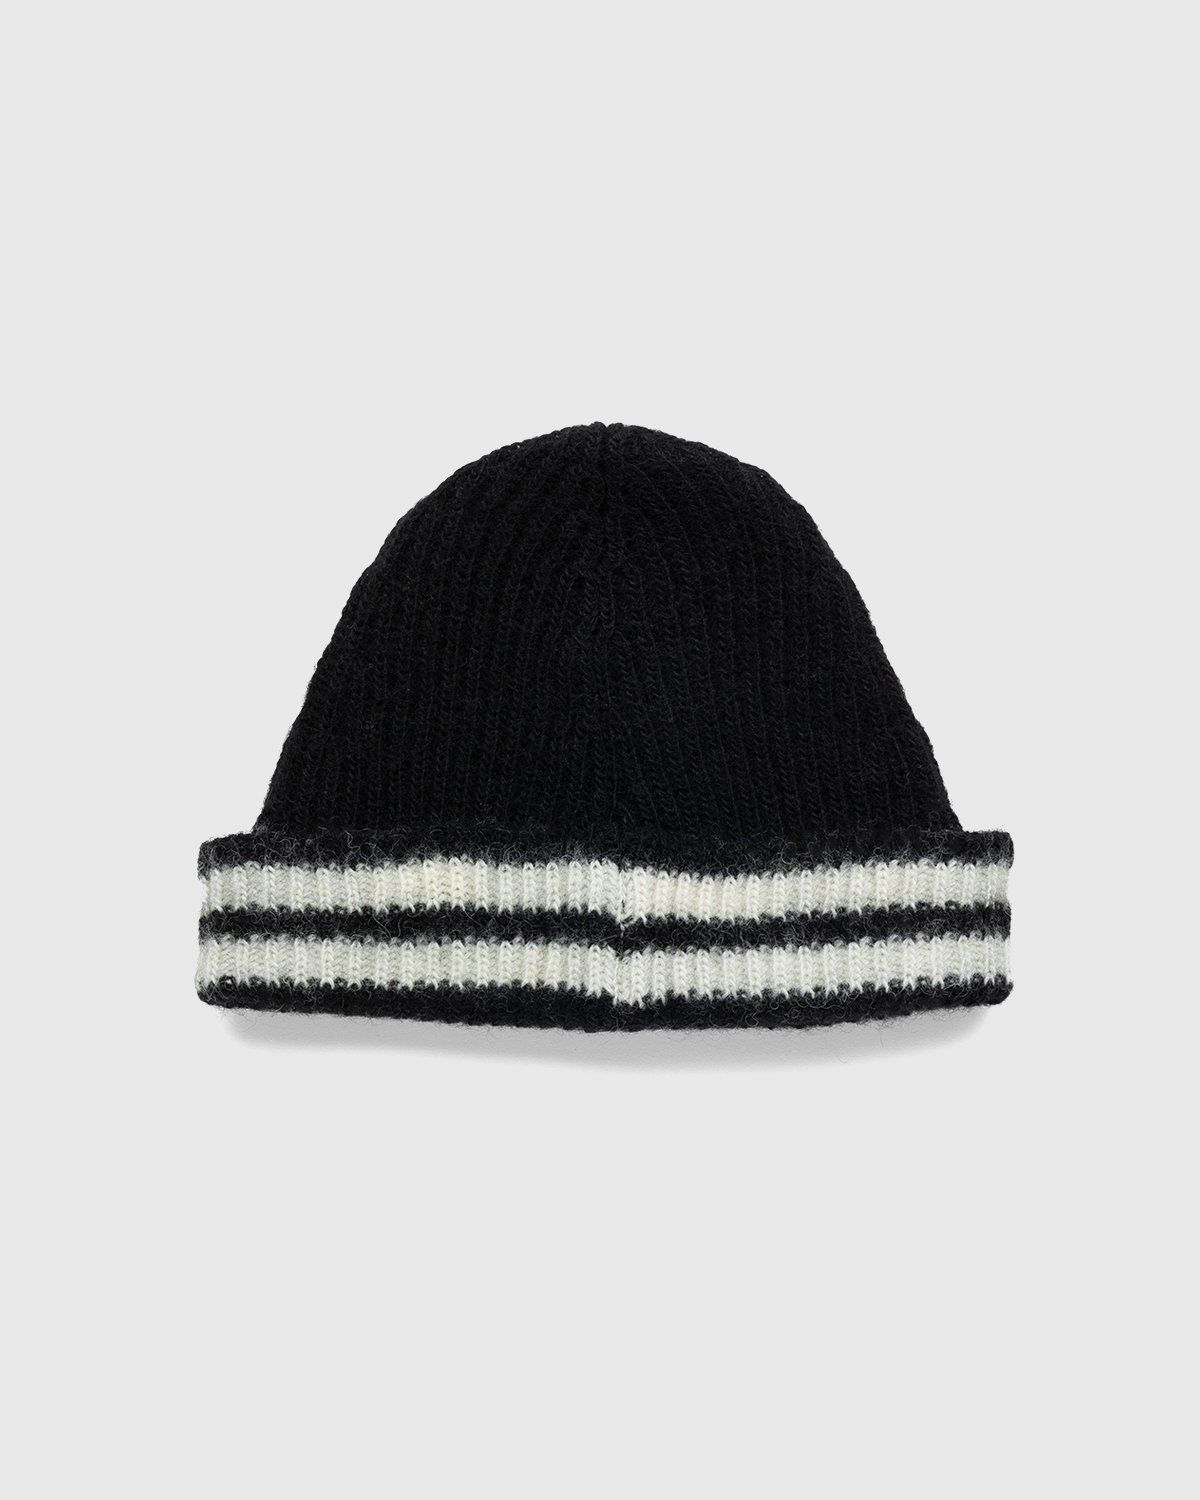 Our Legacy – Knitted Stripe Hat Black Ivory Wool - Image 2